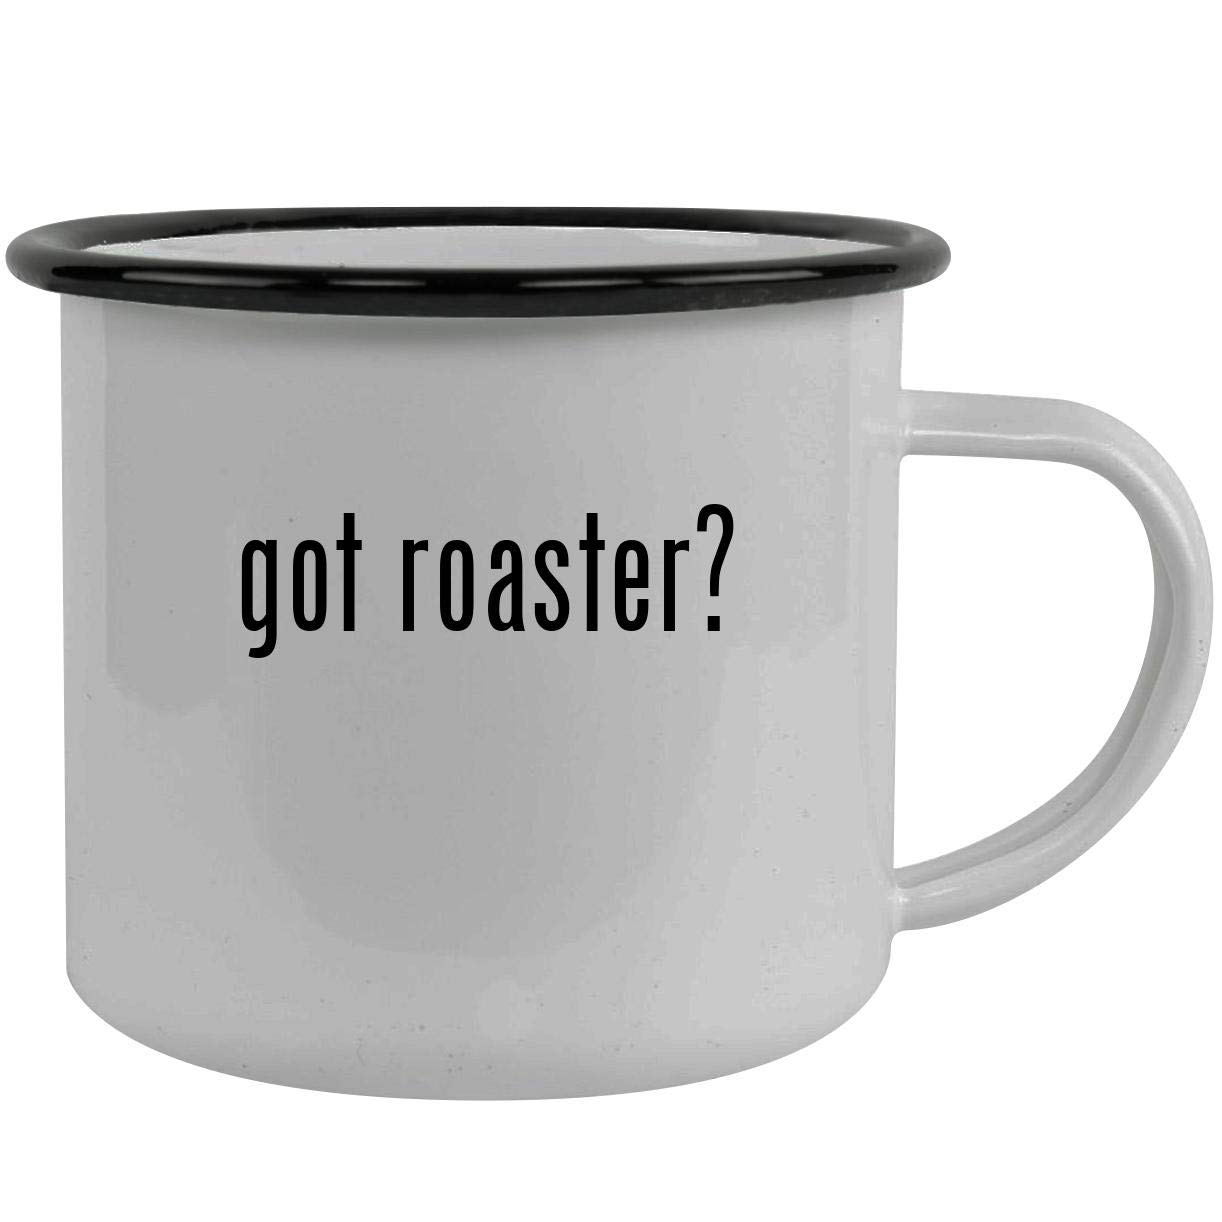 got roaster? - Stainless Steel 12oz Camping Mug, Black